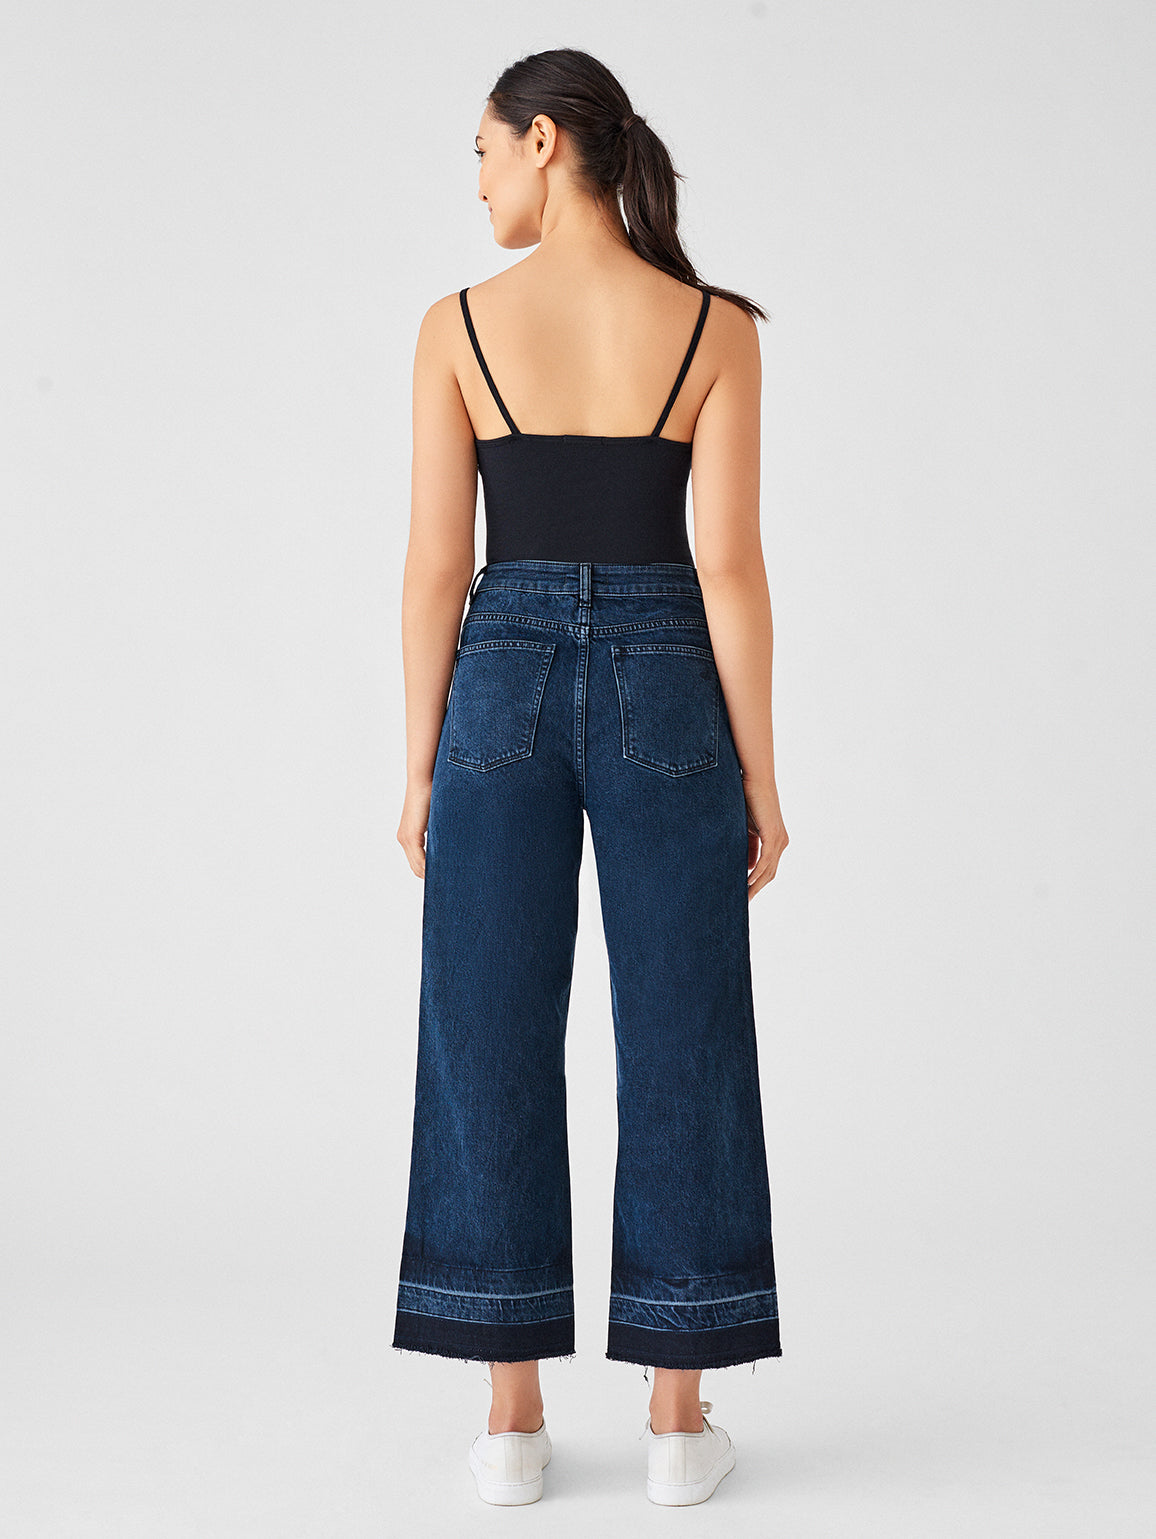 Hepburn High Rise Wide Leg | Stoll